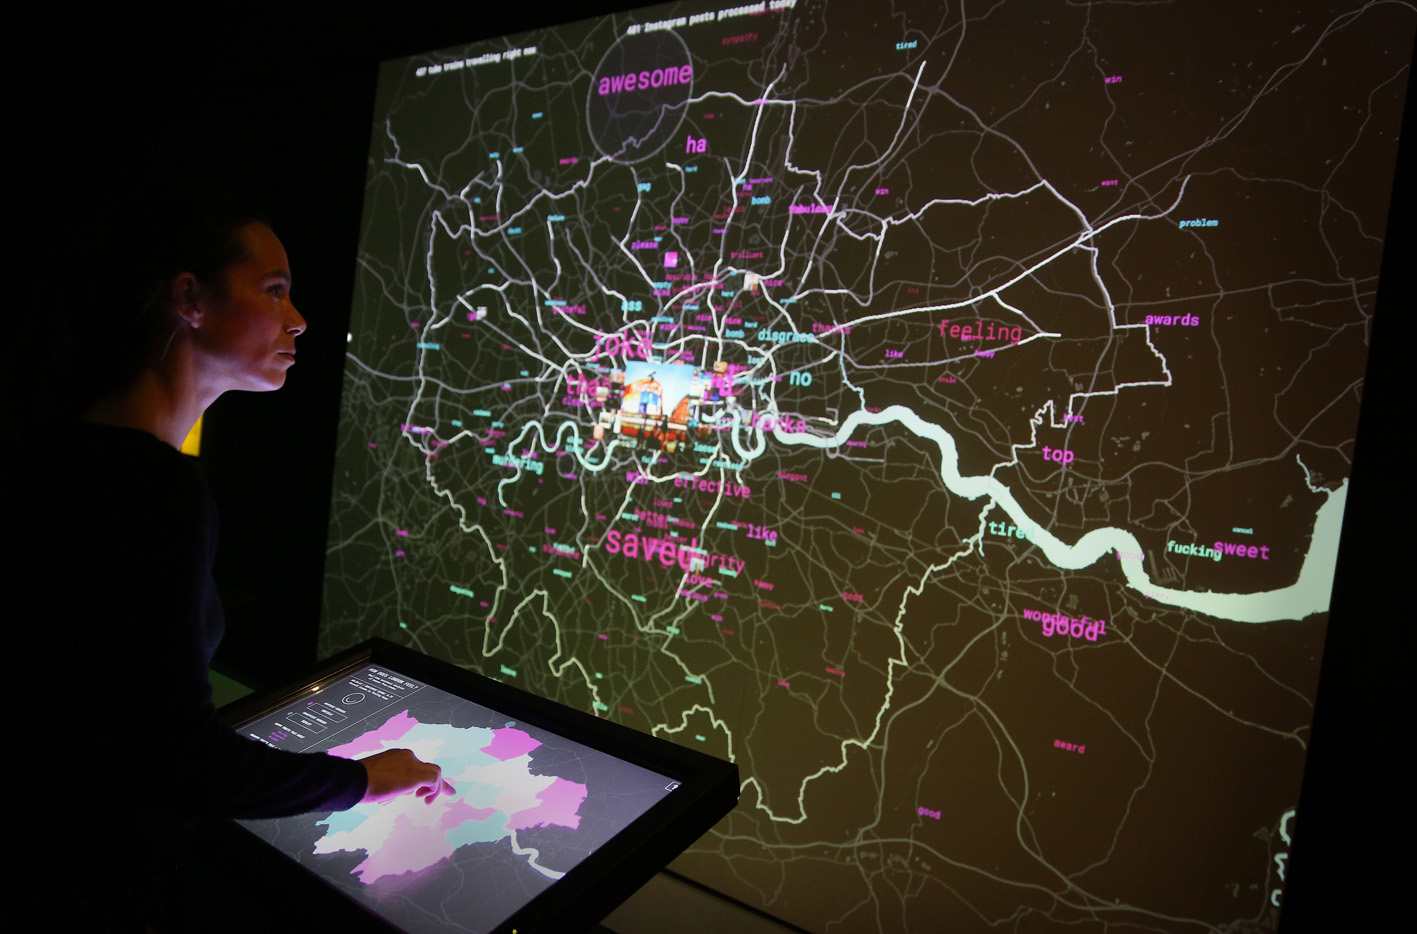 London Data Streams - a live social media map of London by Tekja at the Big Bang Data exhibition